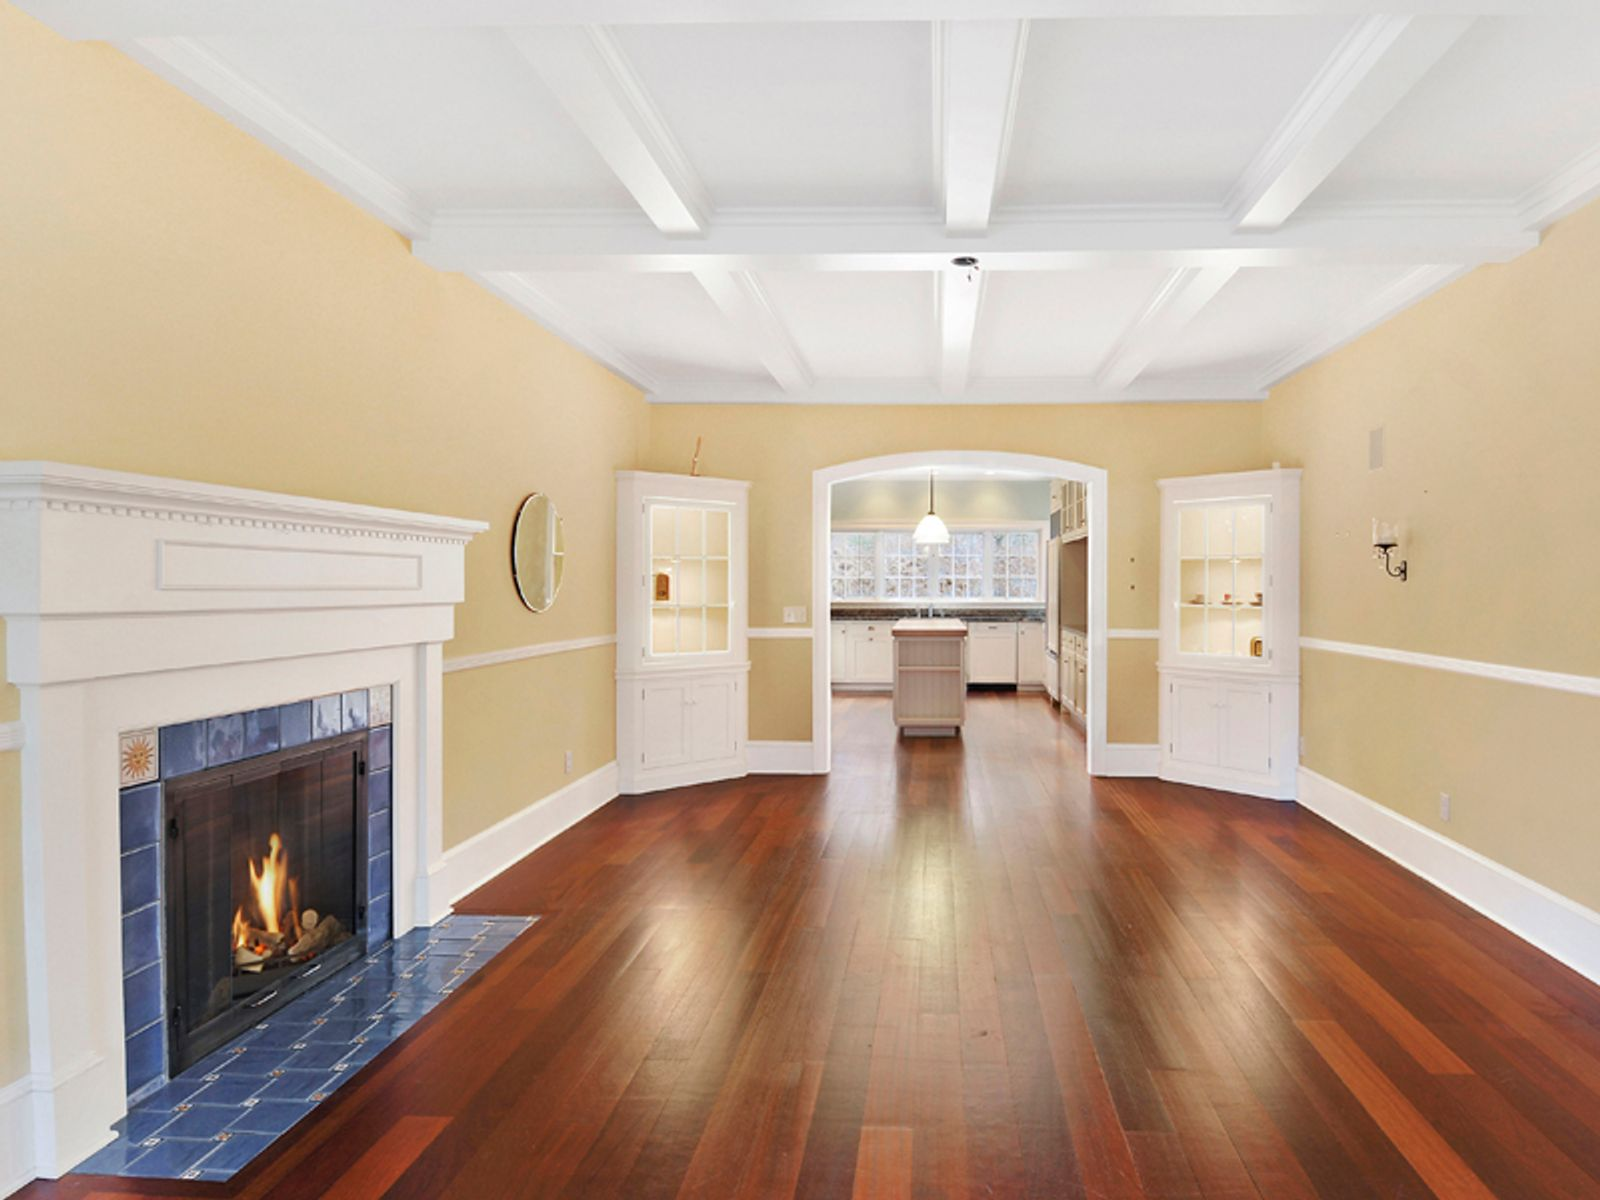 A Spacious Custom Home - in contract